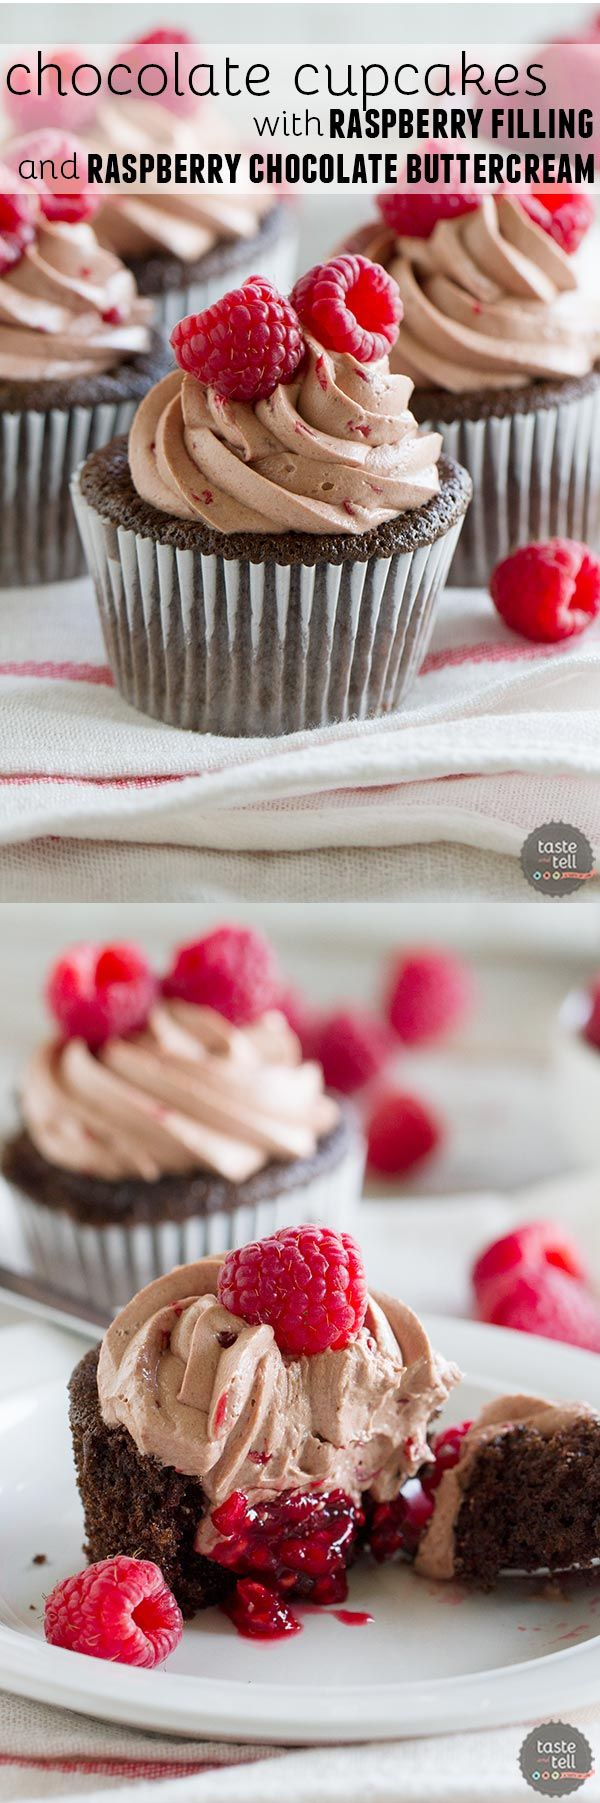 The perfect marriage of chocolate and raspberry - chocolate cupcakes are filled with a fresh raspberry filling, then topped with a silky smooth raspberry chocolate Swiss Meringue Buttercream.